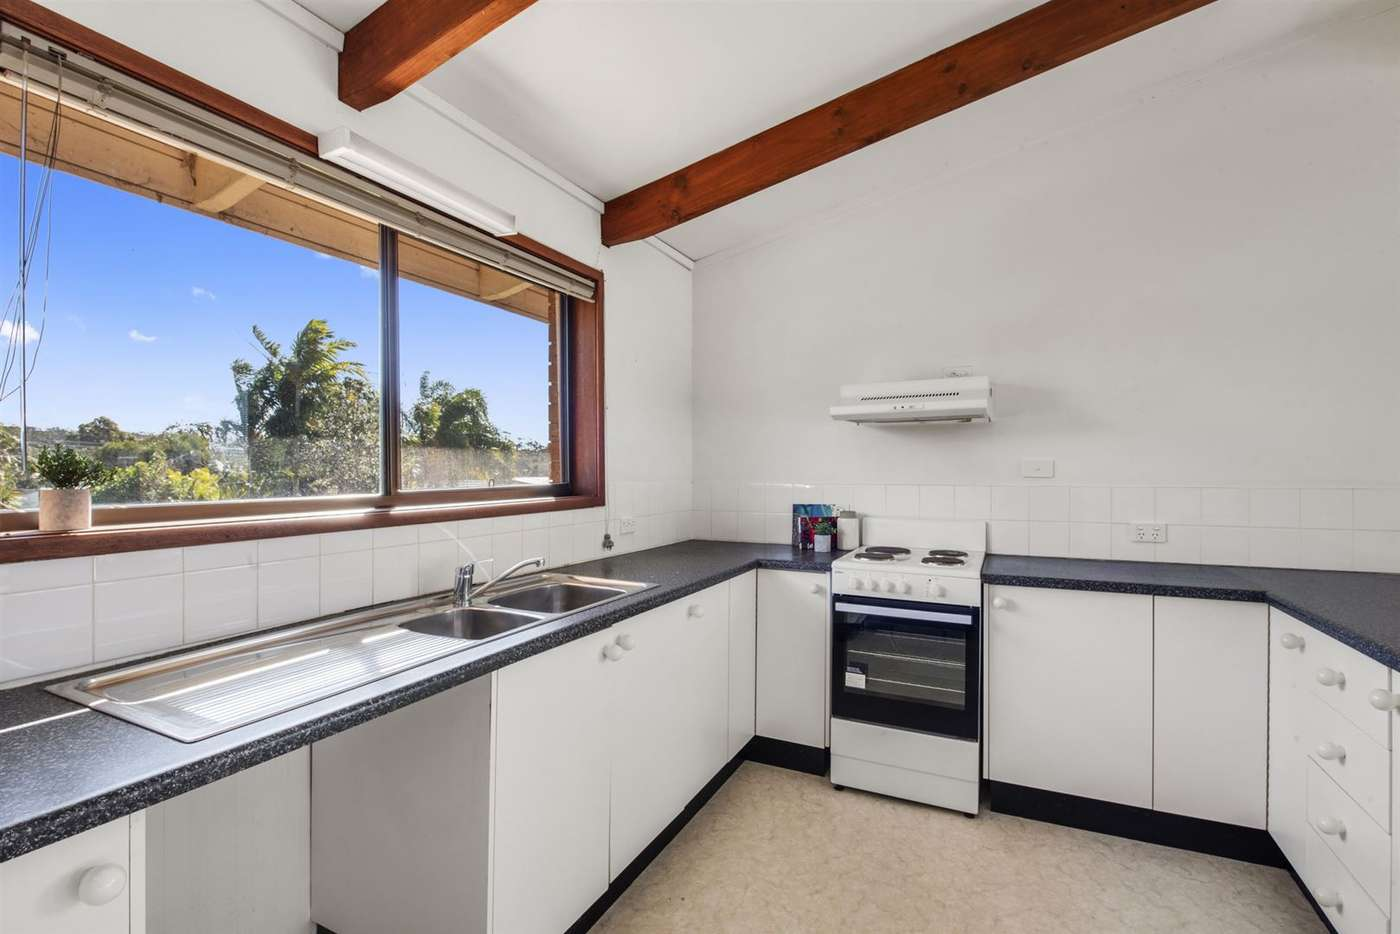 Fifth view of Homely house listing, 27 Torquay Drive, Lake Tabourie NSW 2539